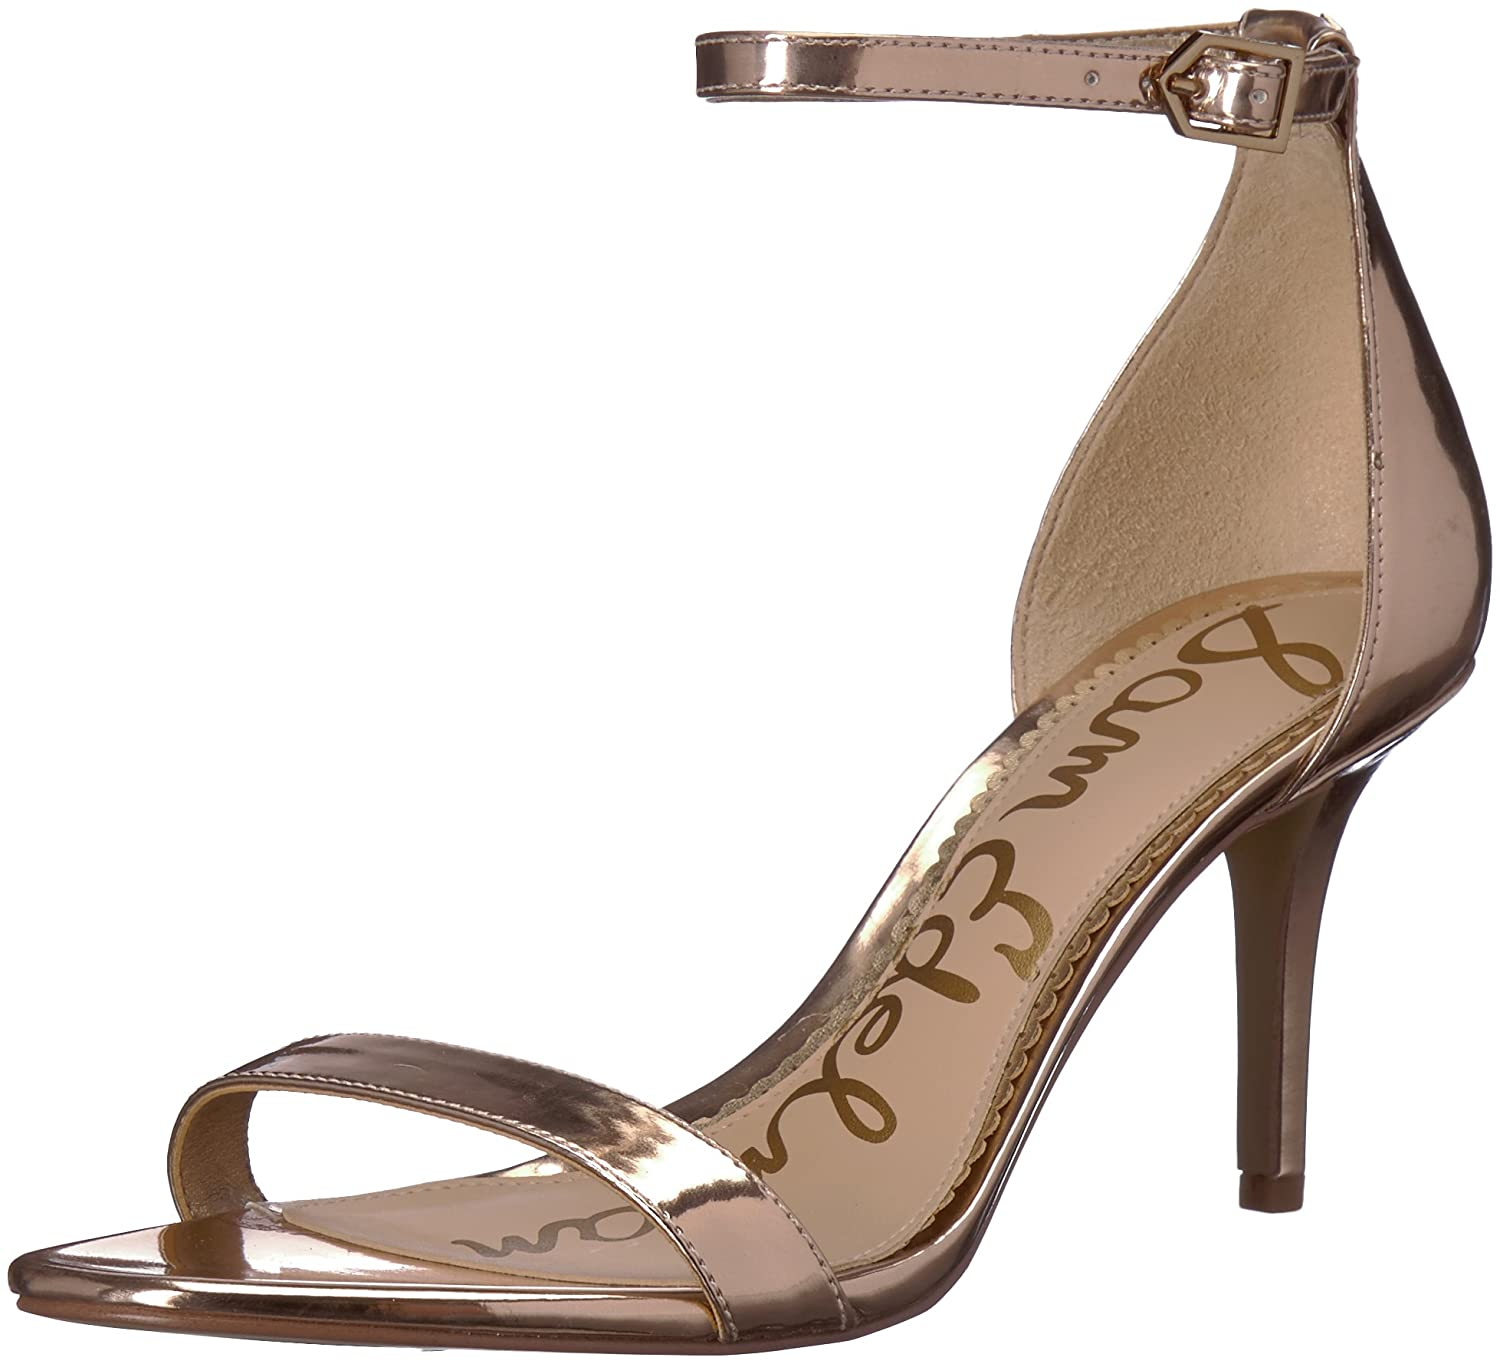 Sam Edelman Women's Patti Heeled Sandal B072W34HNN 5 B(M) US|Oro Remato Liquid Metallic